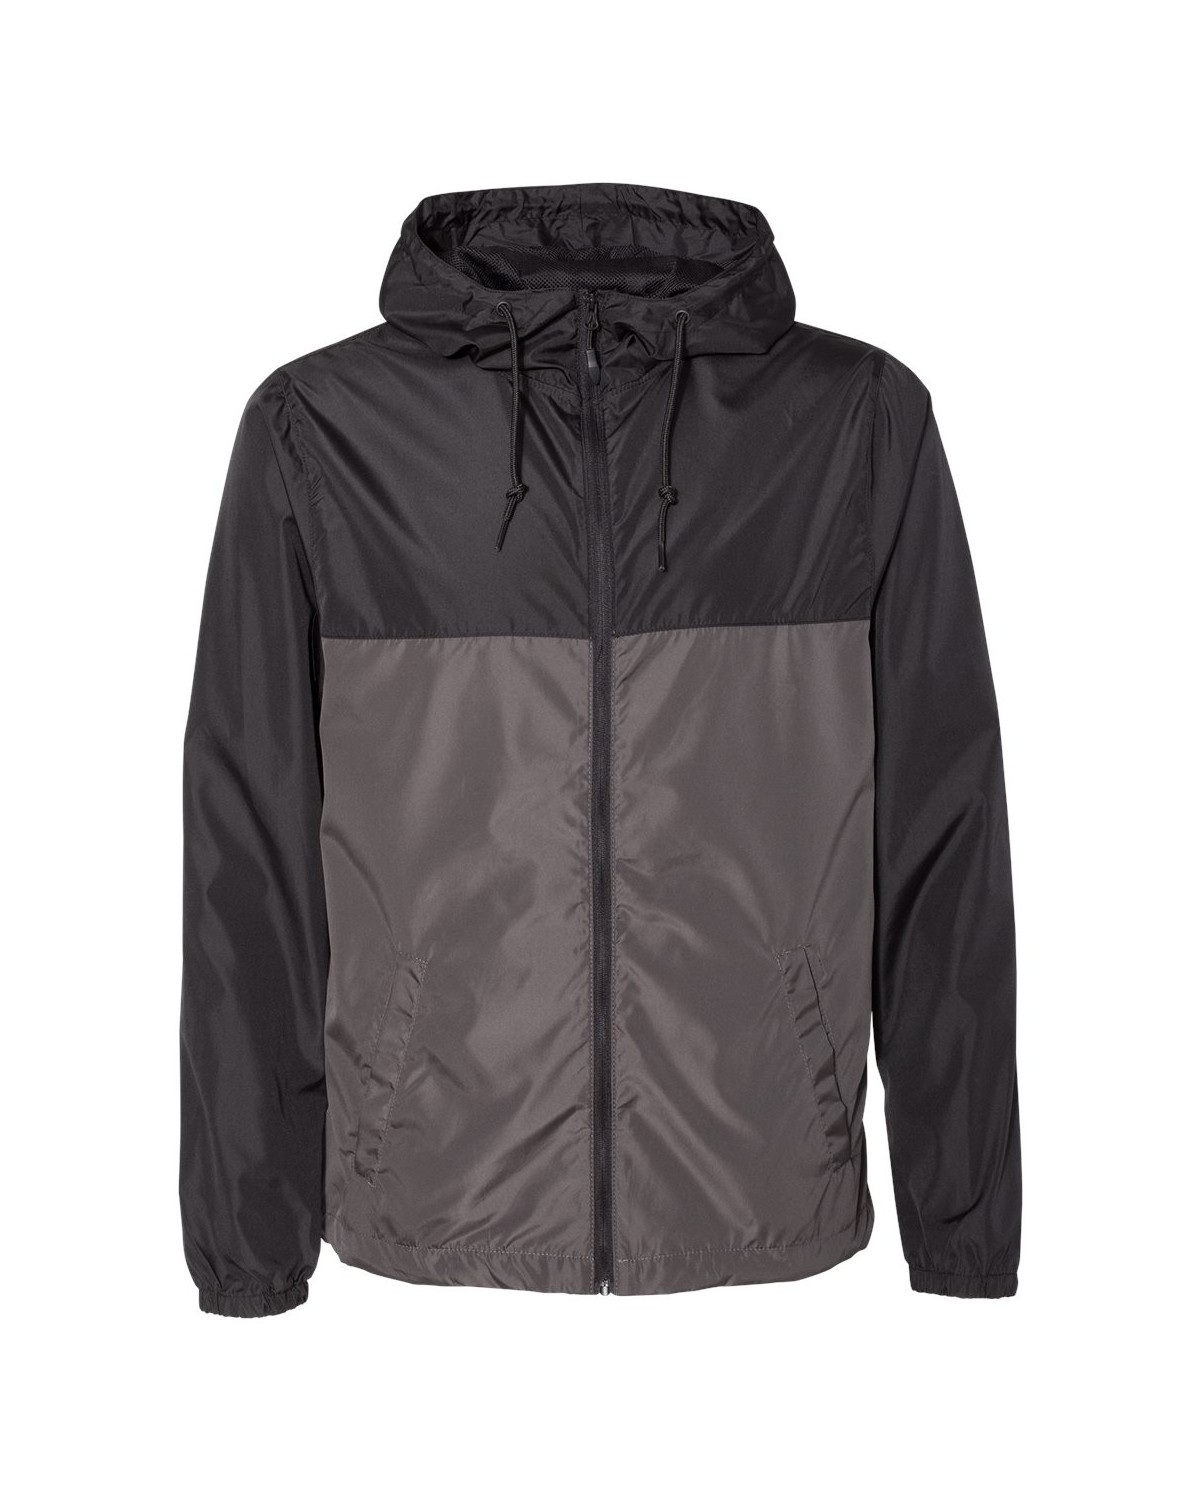 EXP54LWZ Independent Trading Company BLACK/ GRAPHITE